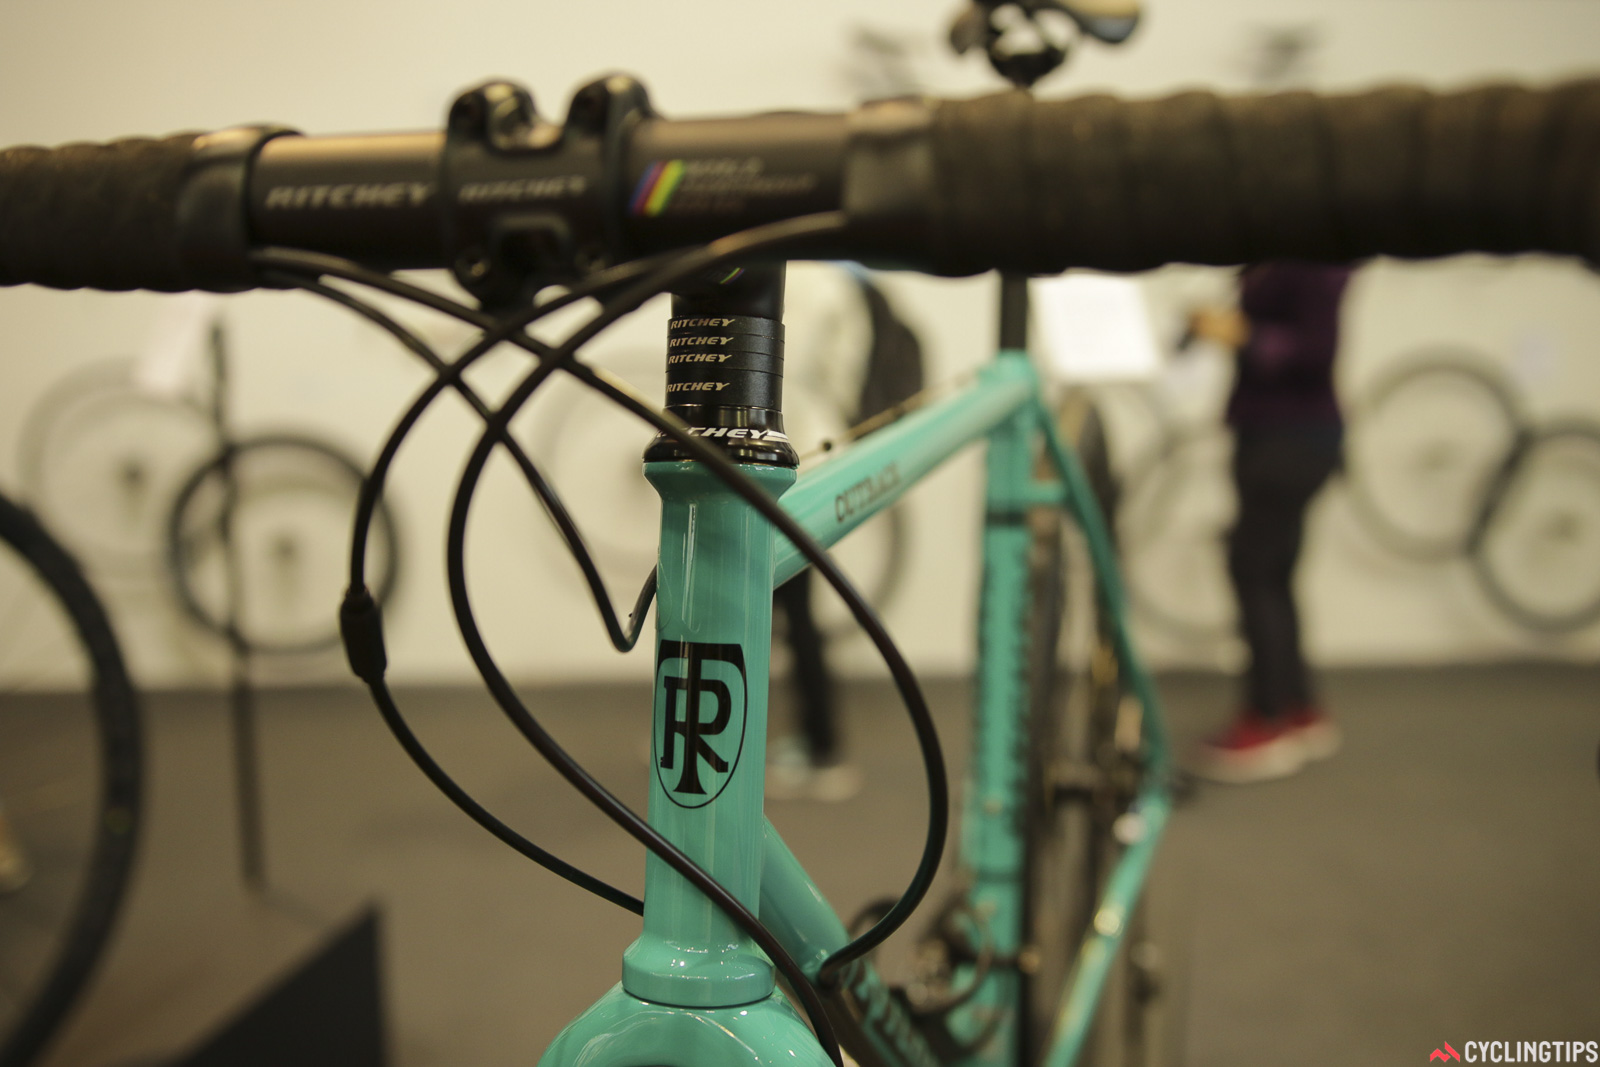 The Ritchey Outback offers room for up to a 40c tyres, a low bottom bracket height, thru-axles front and rear and a few classic touches. Photo: David Rome.